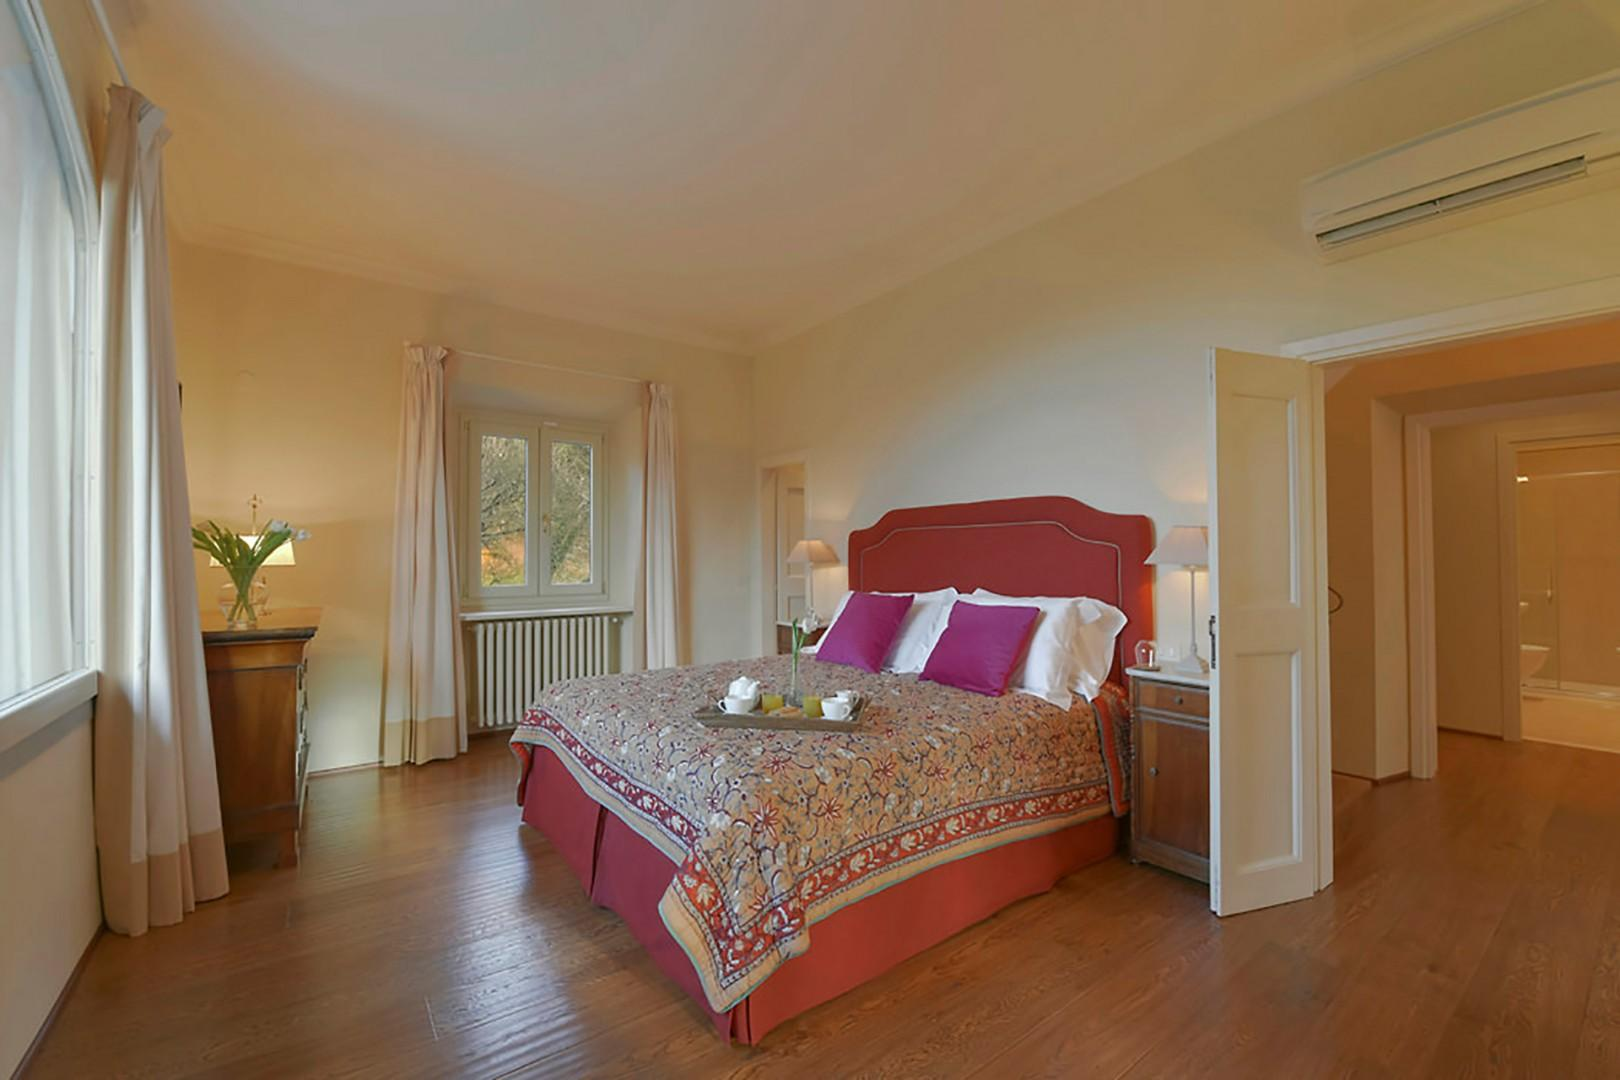 Each bedroom at Villa Felice has beds that can be prepared apart as two beds.